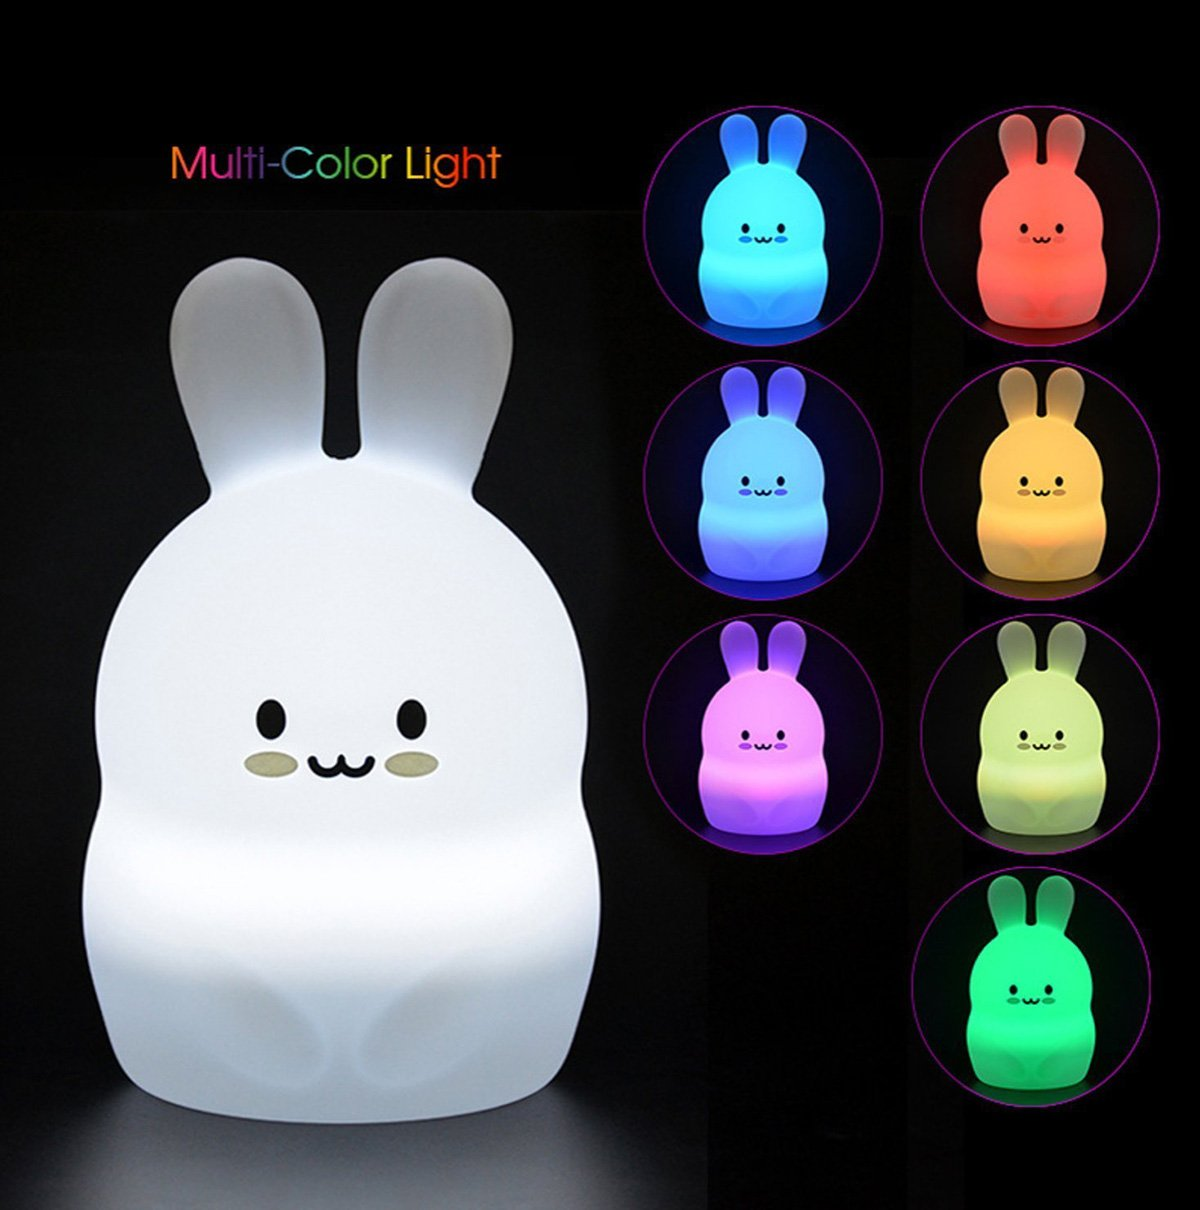 Baby Night Light Nursery Lamp, Cute Portable LED Bunny Night Light, Silicone Tap Control Night Lamp for Kids & Children - 4 Lighting Modes/ 8-Colors/USB Rechargeable